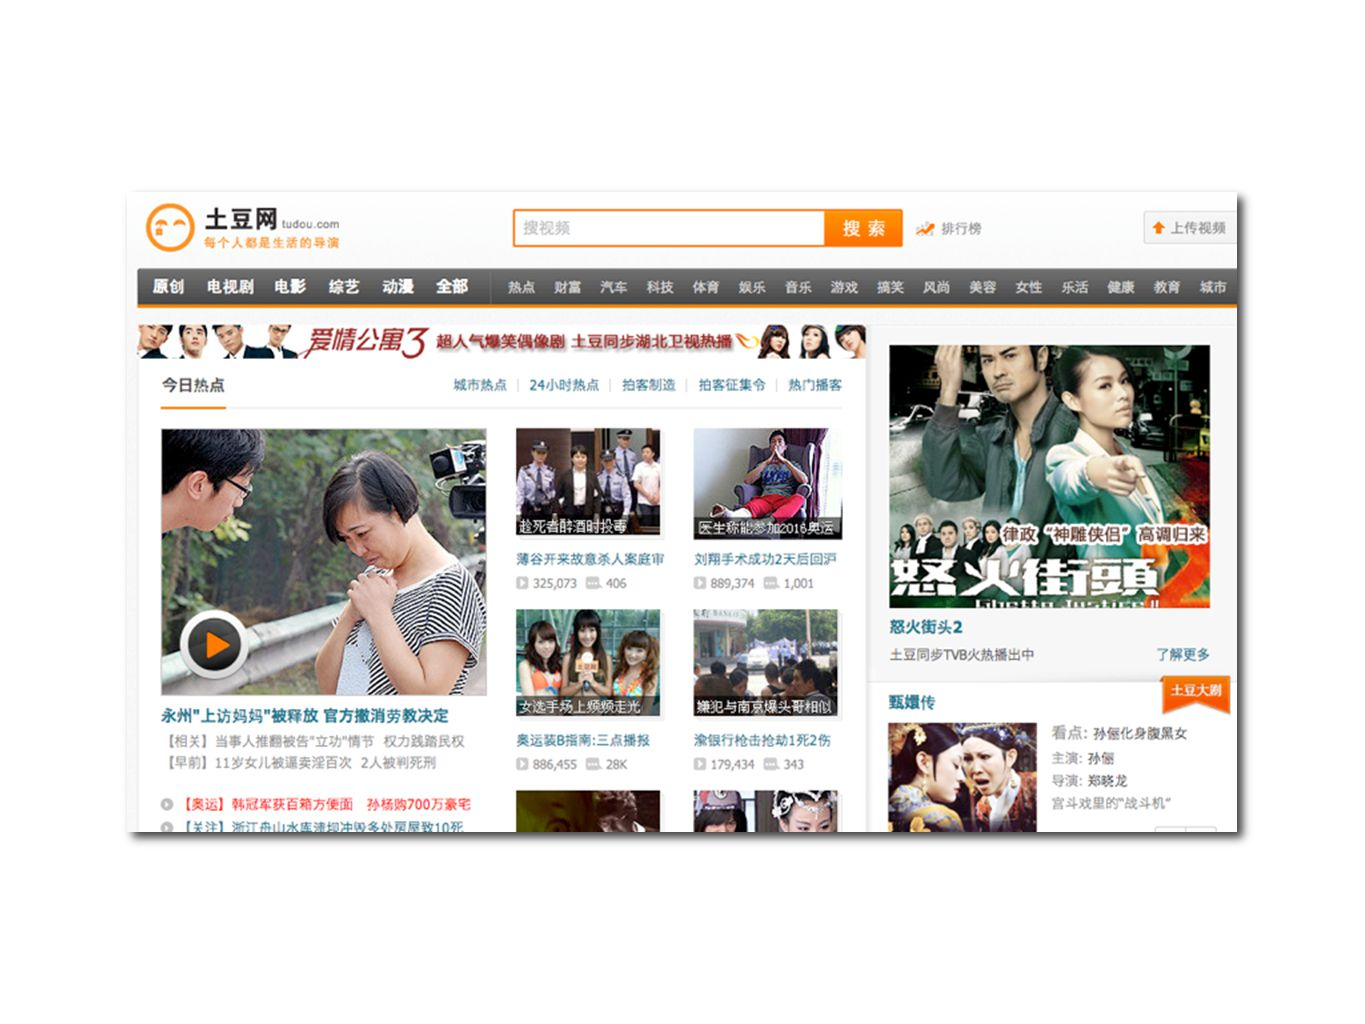 E.g., exclusive license for Palace, most popular Chinese TV series in 2011 cost $300k per episode, vs.